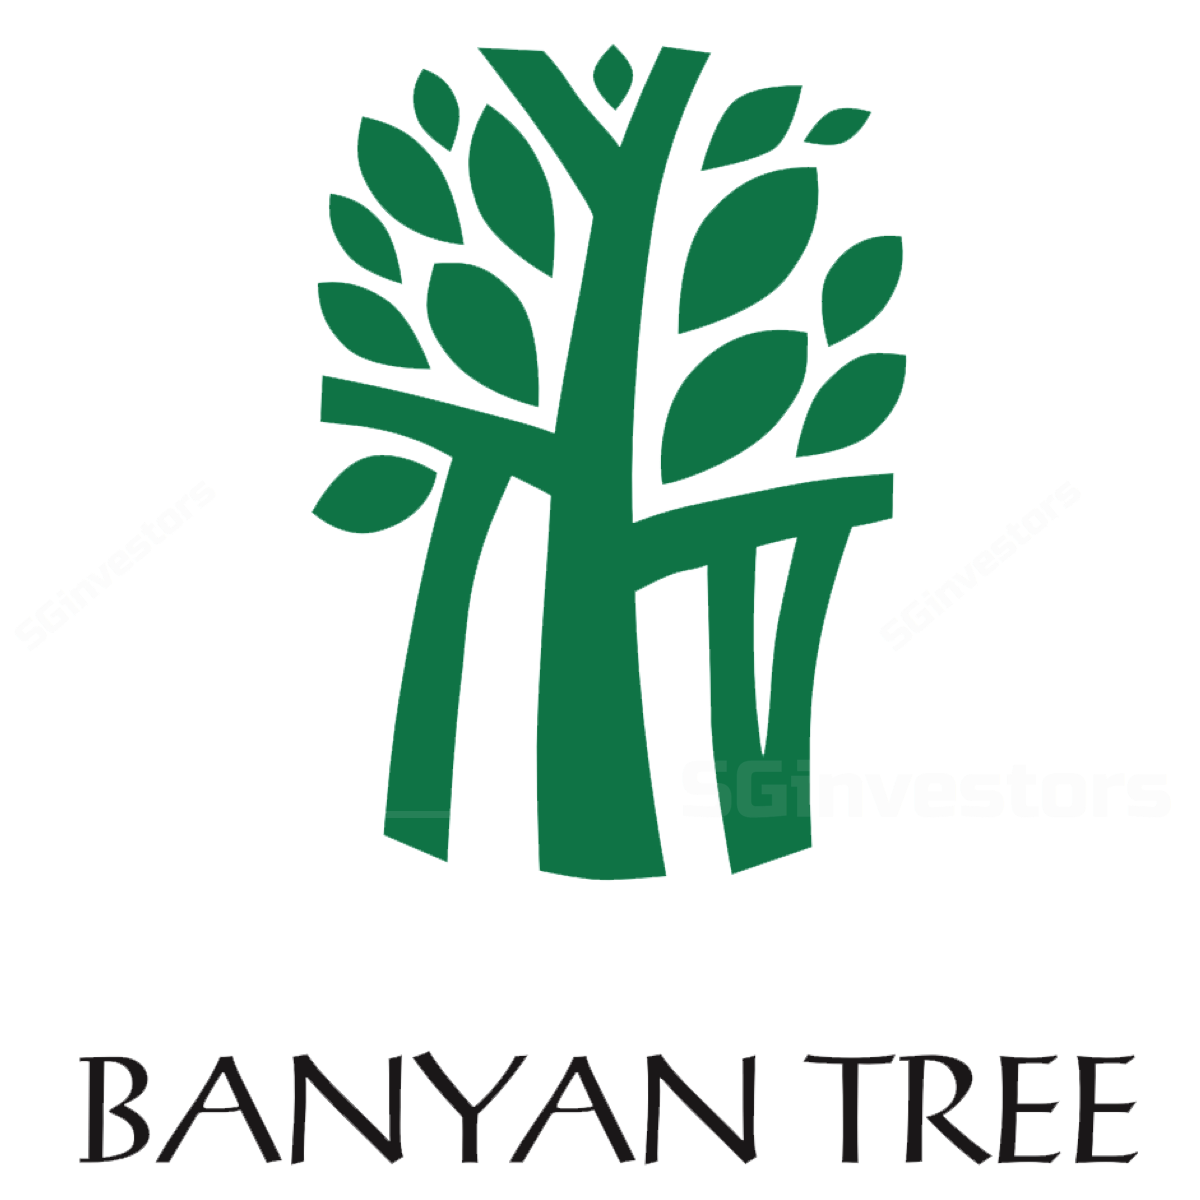 Banyan Tree Holdings (BTH SP) - UOB Kay Hian 2018-01-11: Positive Progress On Casino Licence In Vietnam